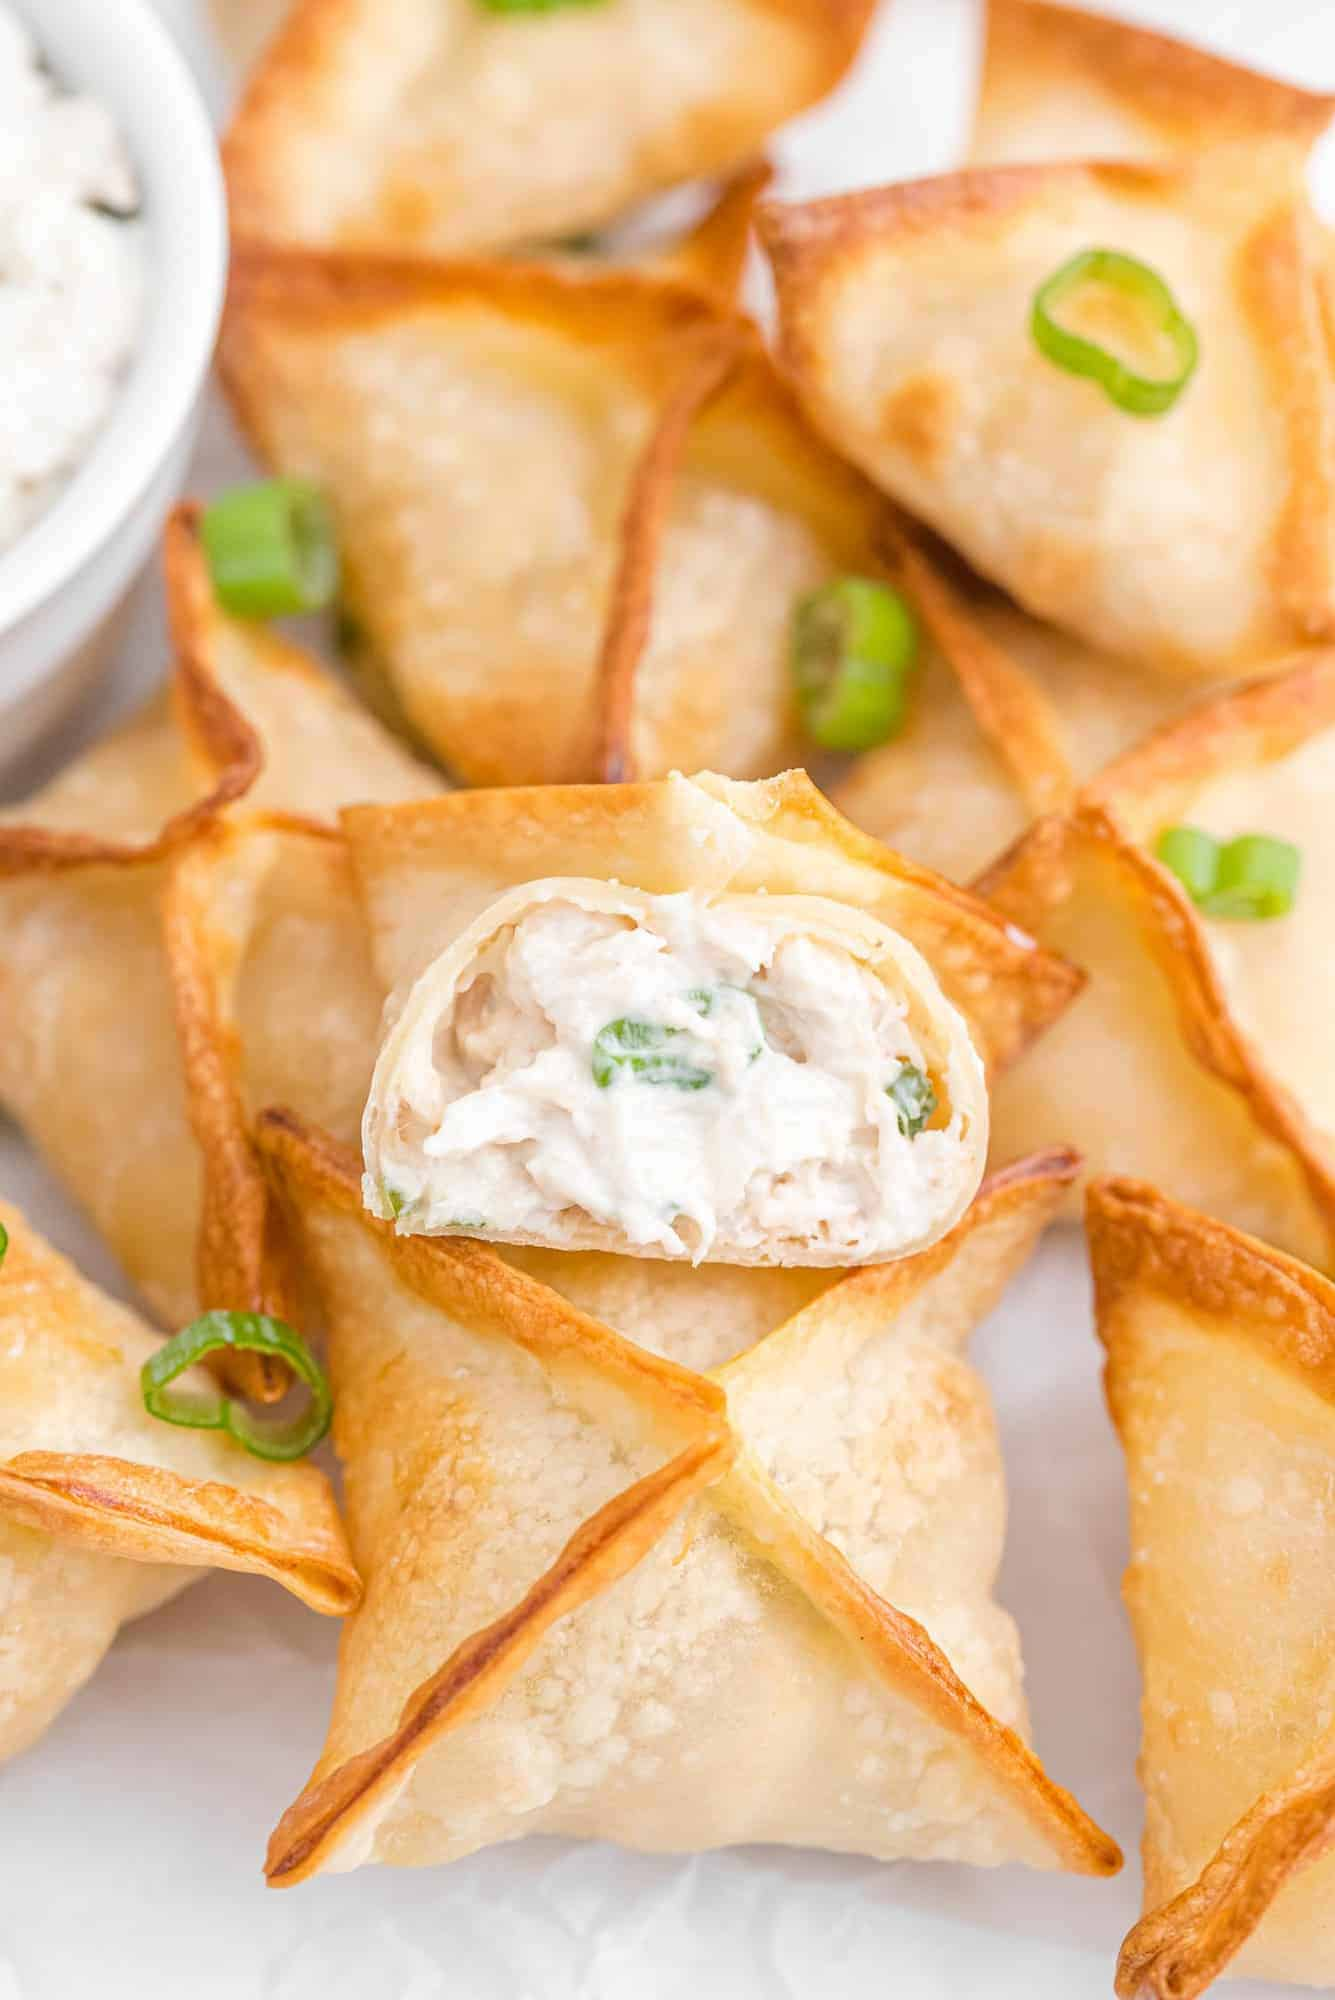 Crab rangoon on a plate with green onions